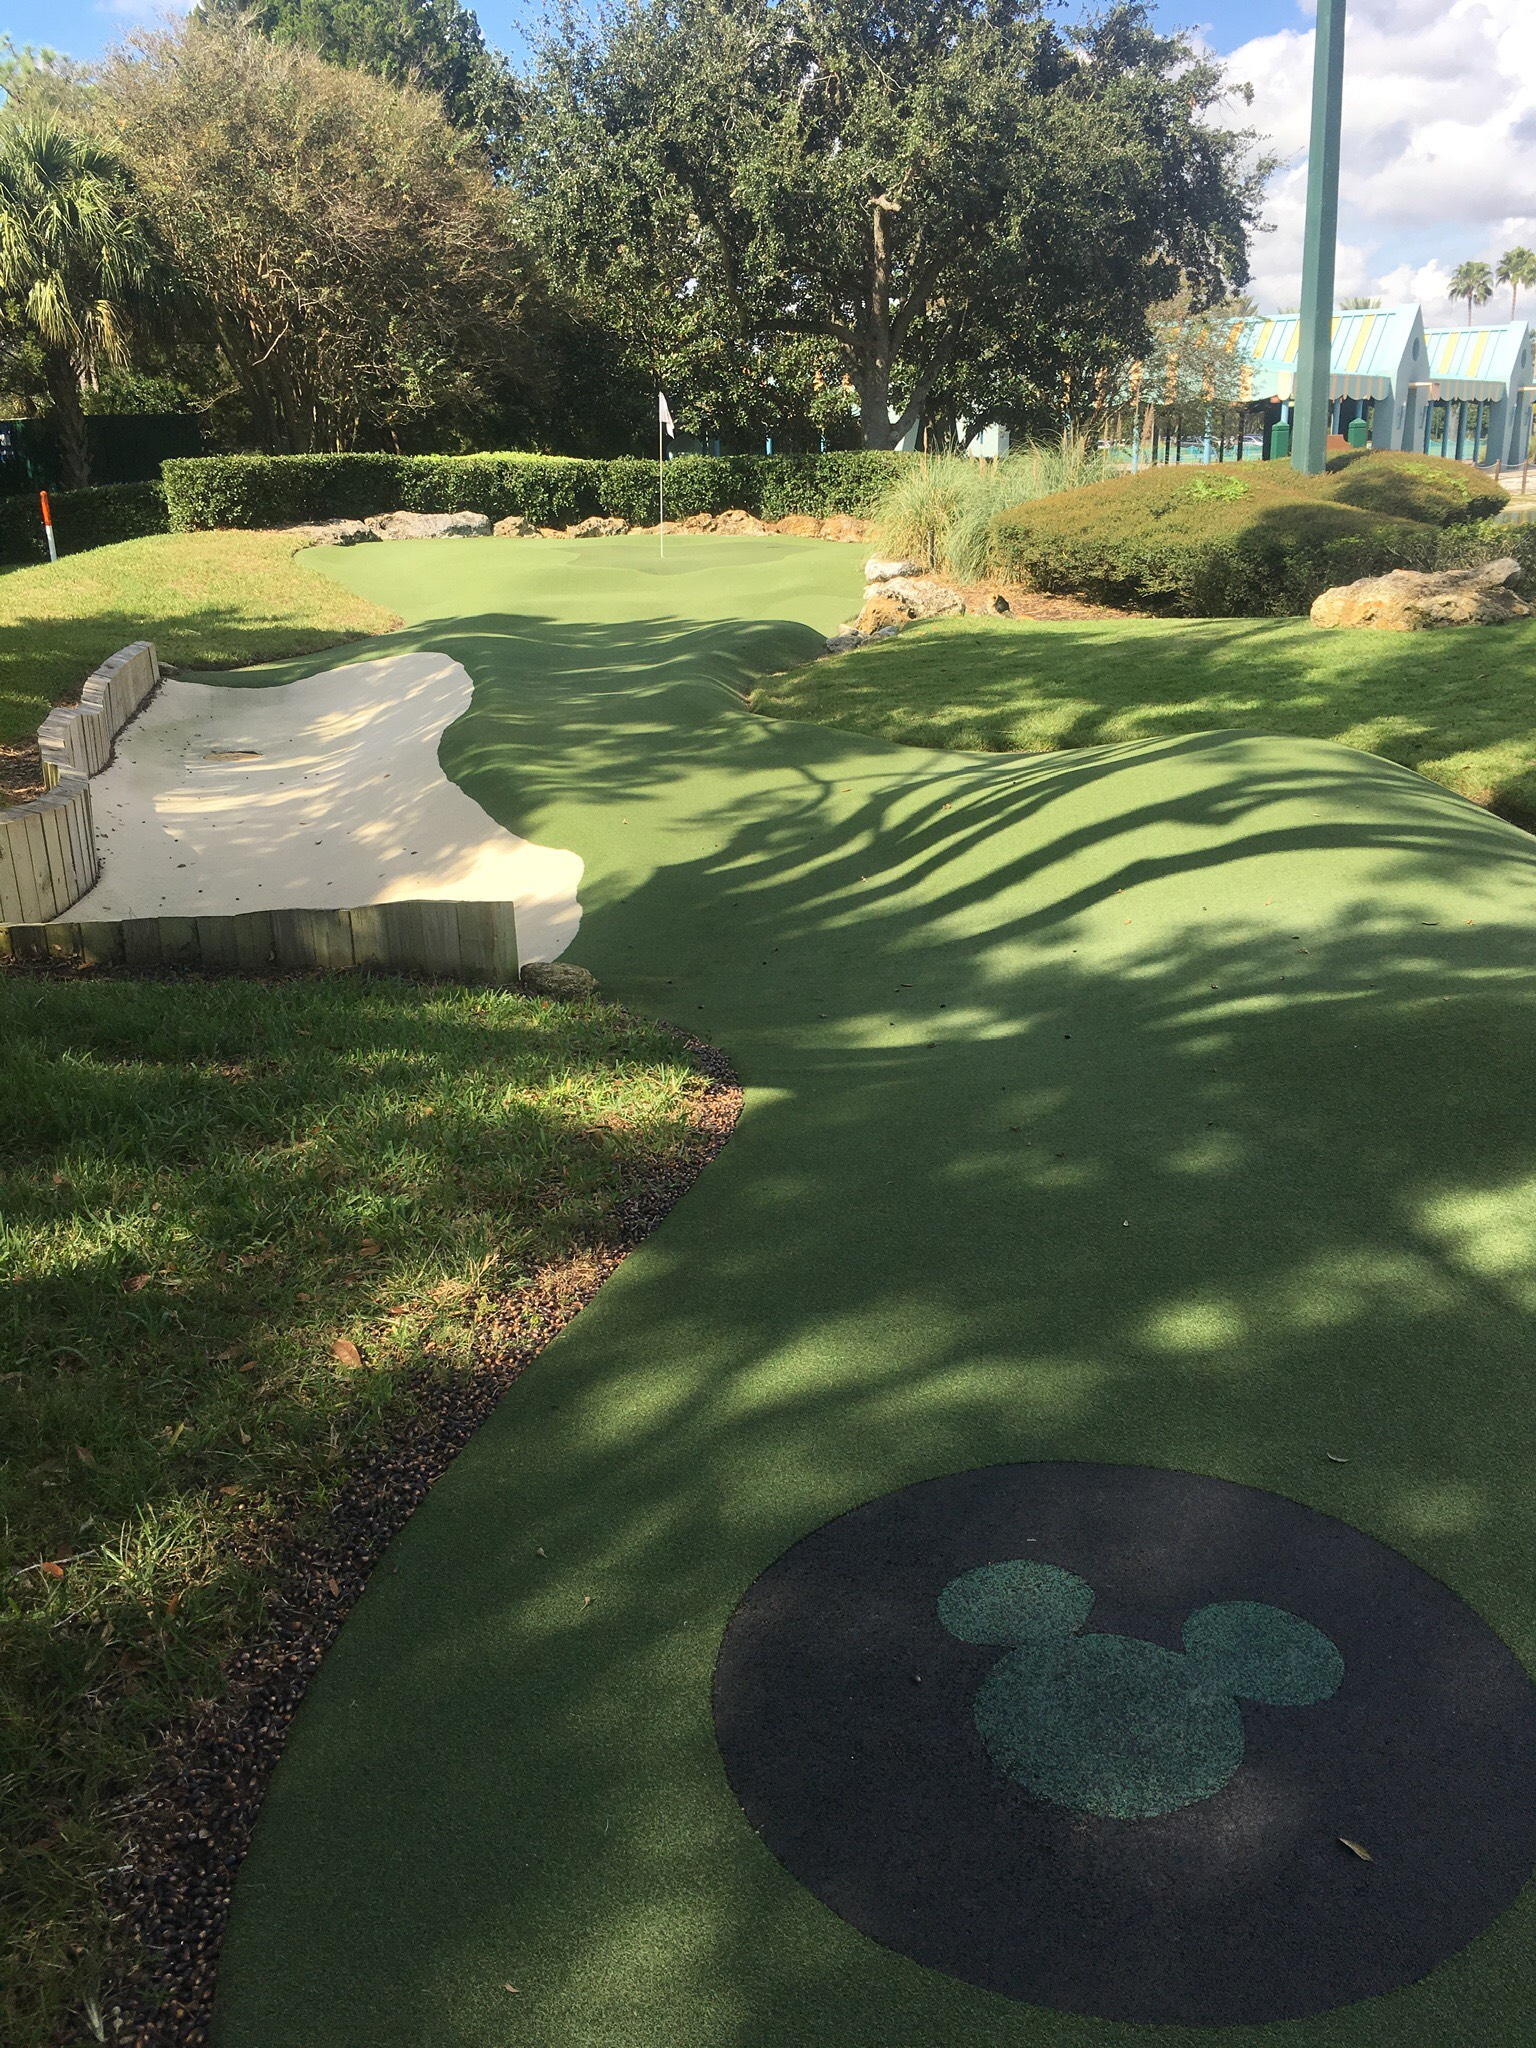 Fantasia Gardens Miniature Golf At The Happiest Place On Earth Tylertravelstv